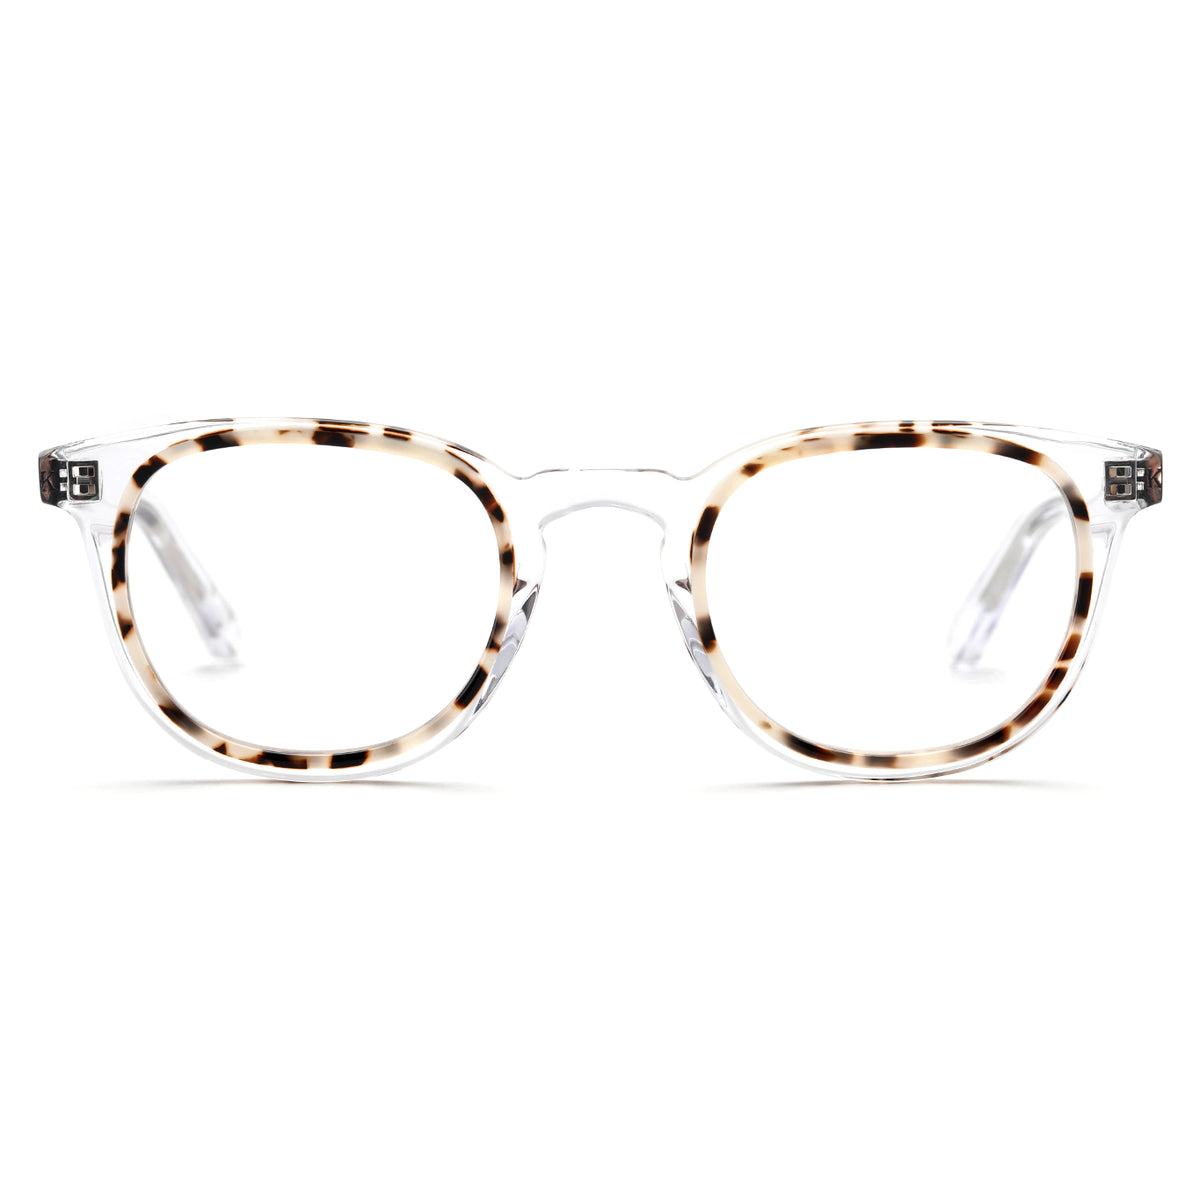 ELM | Crystal to Oyster  - handcrafted acetate eyewear